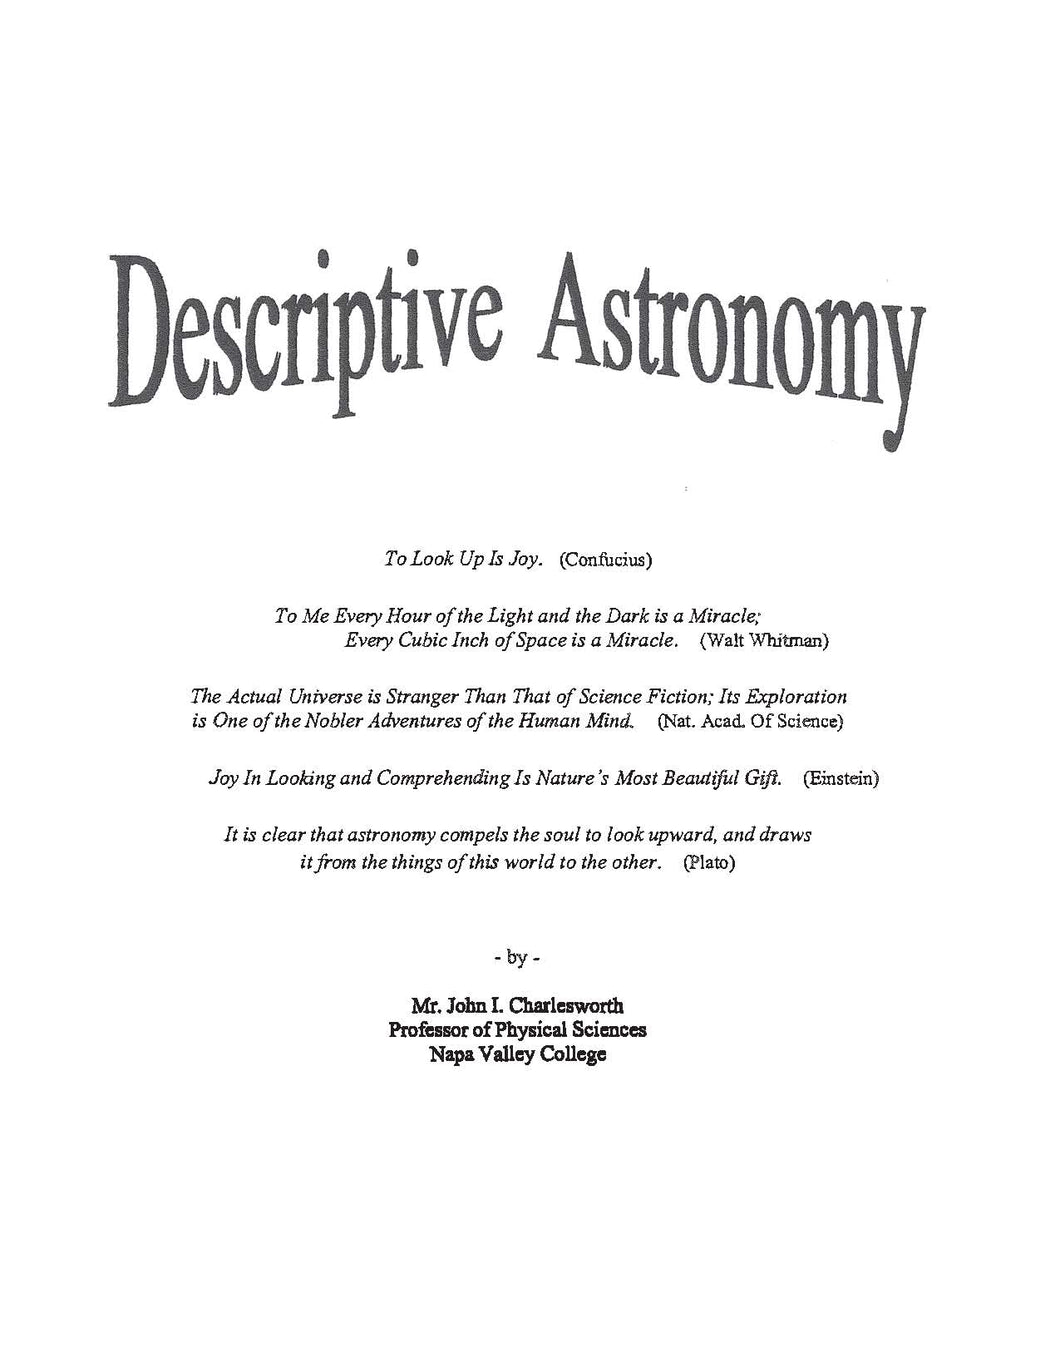 John Charlesworth's Descriptive Astronomy